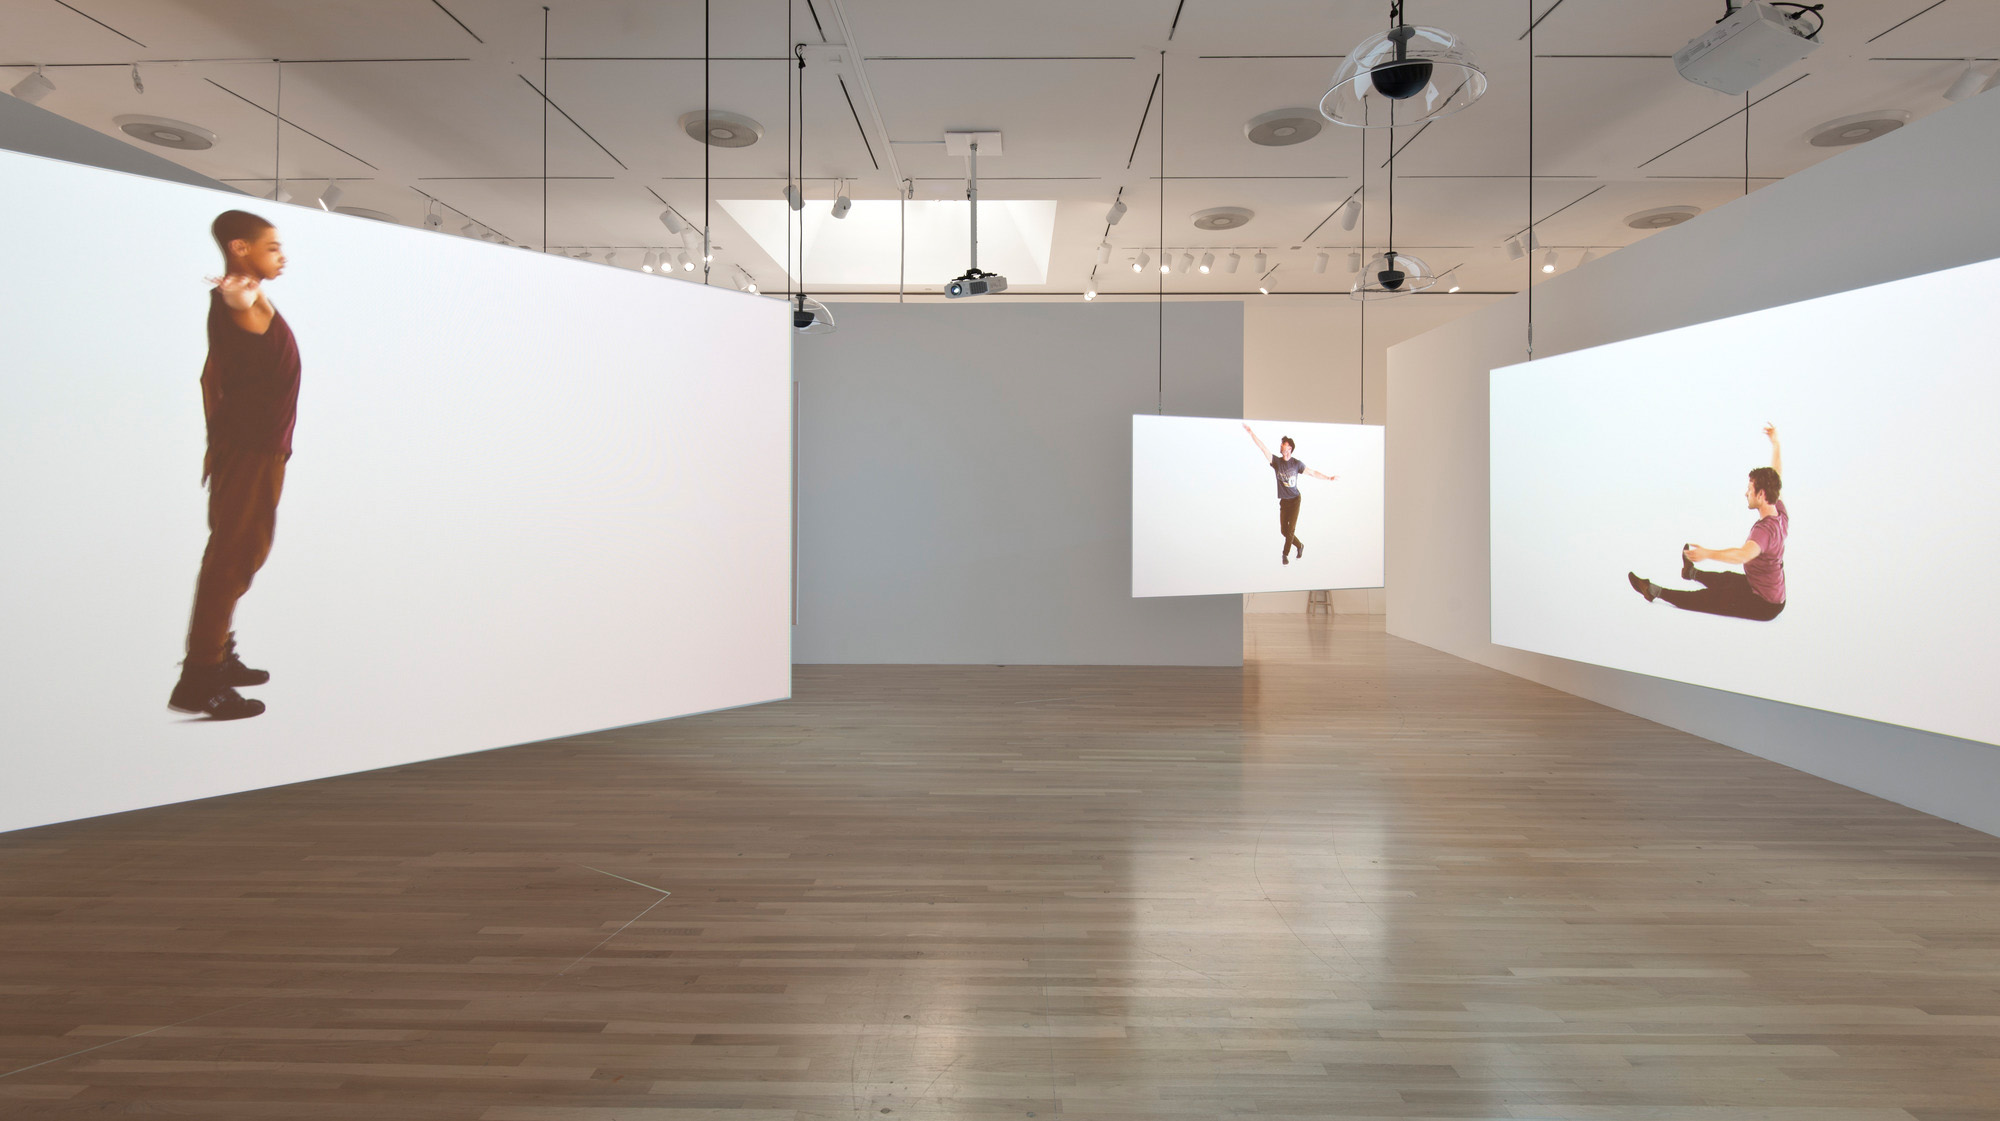 Gerard & Kelly. <em>Kiss Solo</em>, 2012. <em>Made in L.A. 2014</em>. Installation view at the Hammer Museum, Los Angeles. June 15-September 7, 2014. Photography by Brian Forrest.